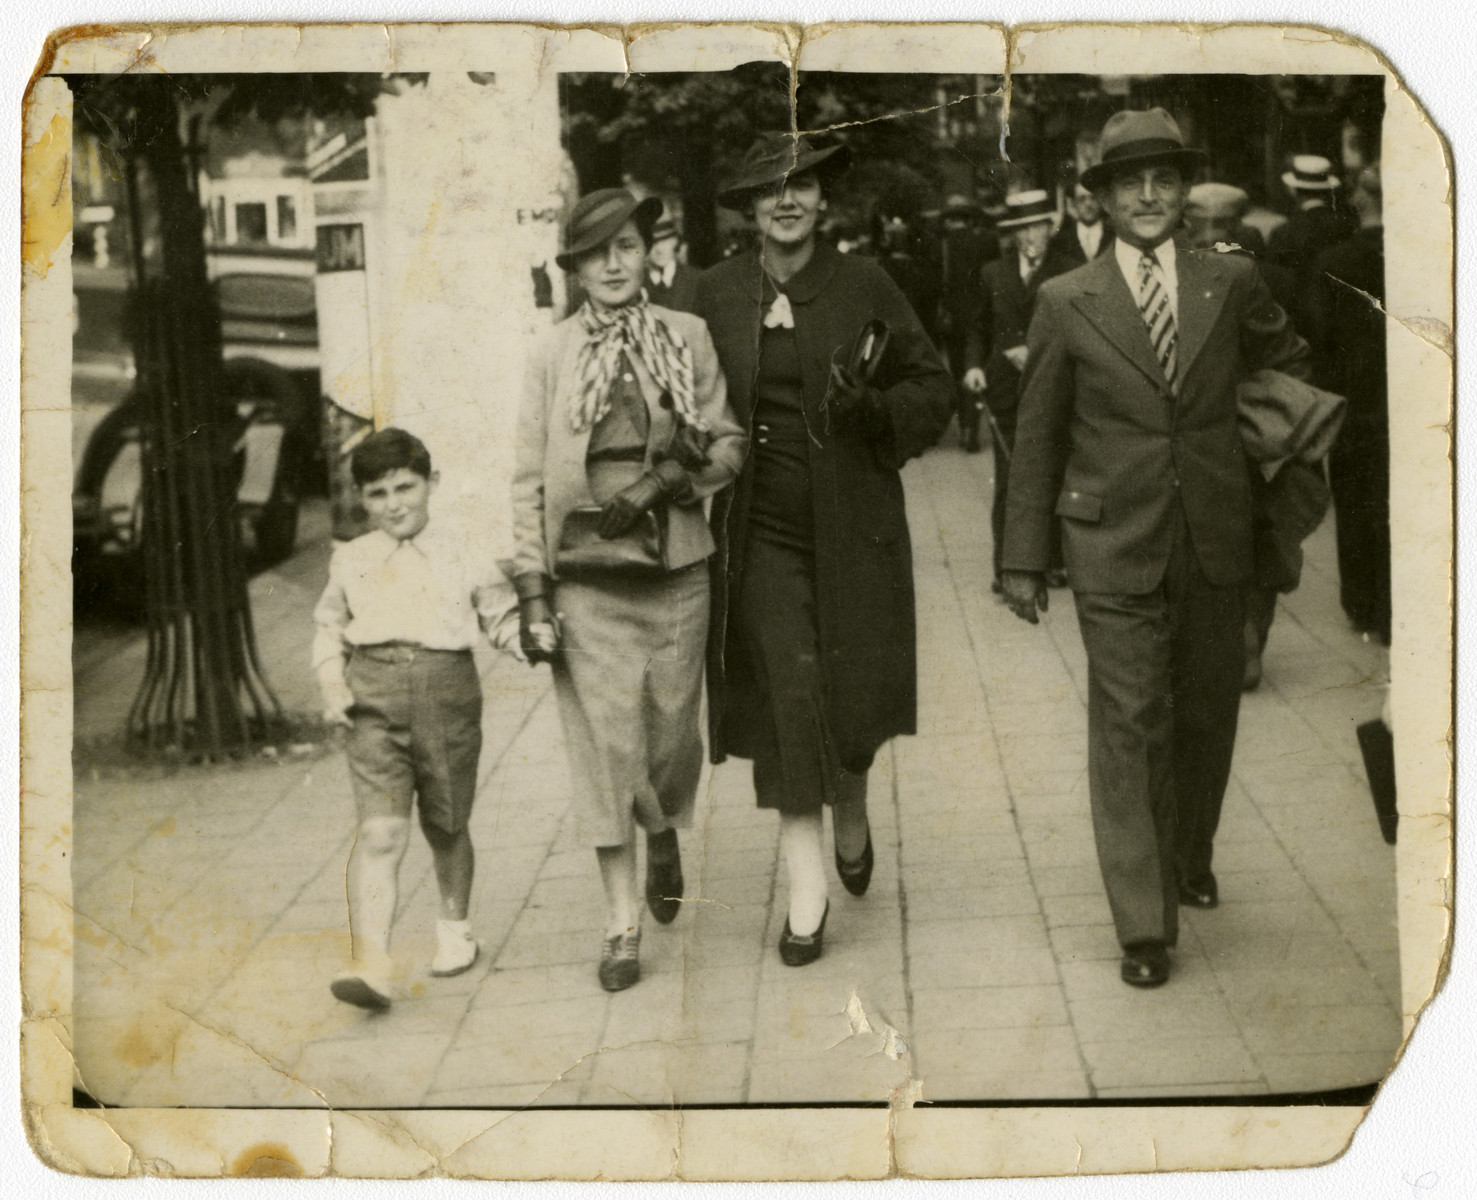 Mark Steil walks down a street in Antwerp with his parents, Adolf and Eliza Steil, and another woman.